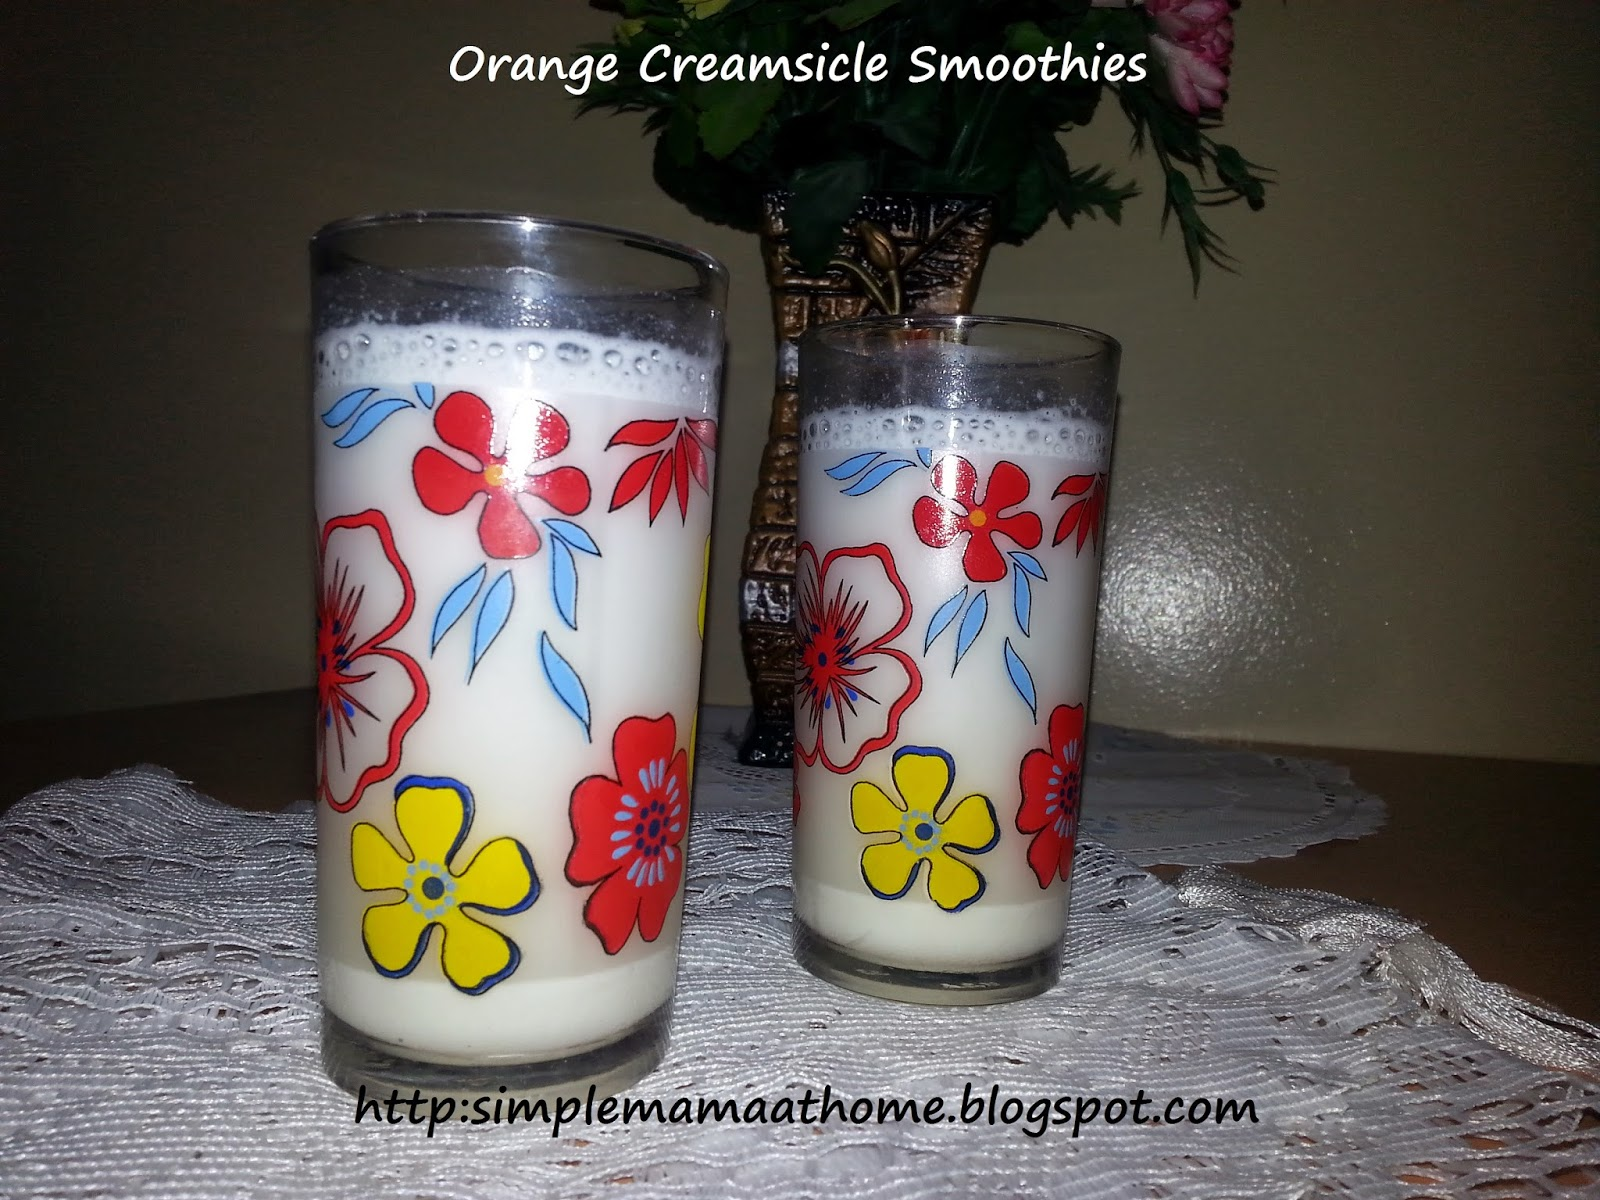 Orange Creamsicle Smoothies